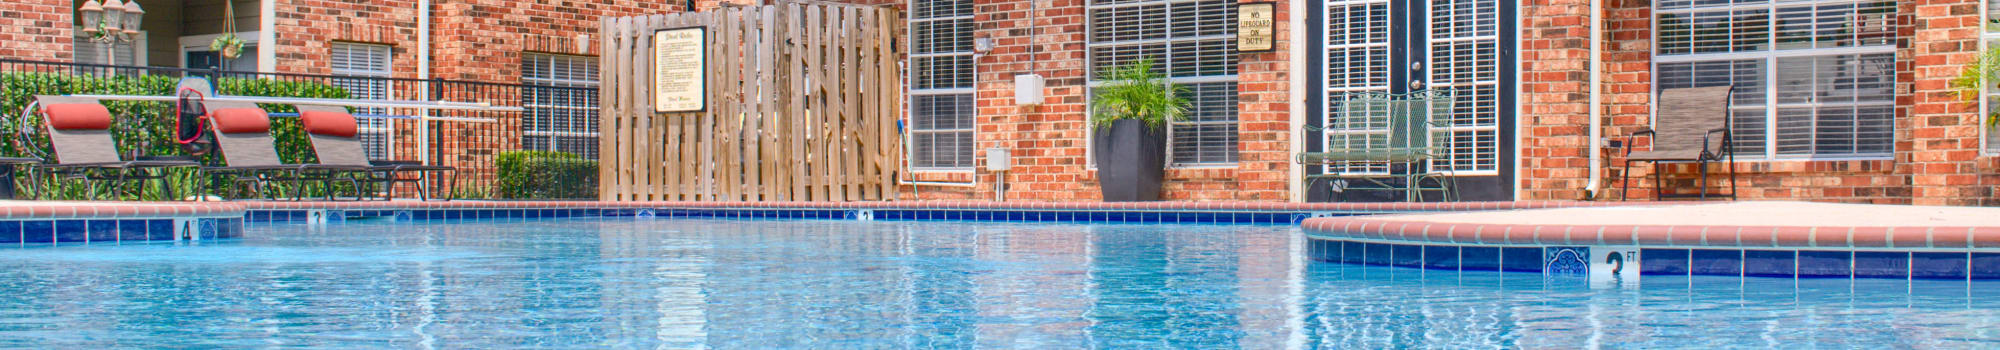 Contact The Lexington Apartment Homes in Biloxi, Mississippi